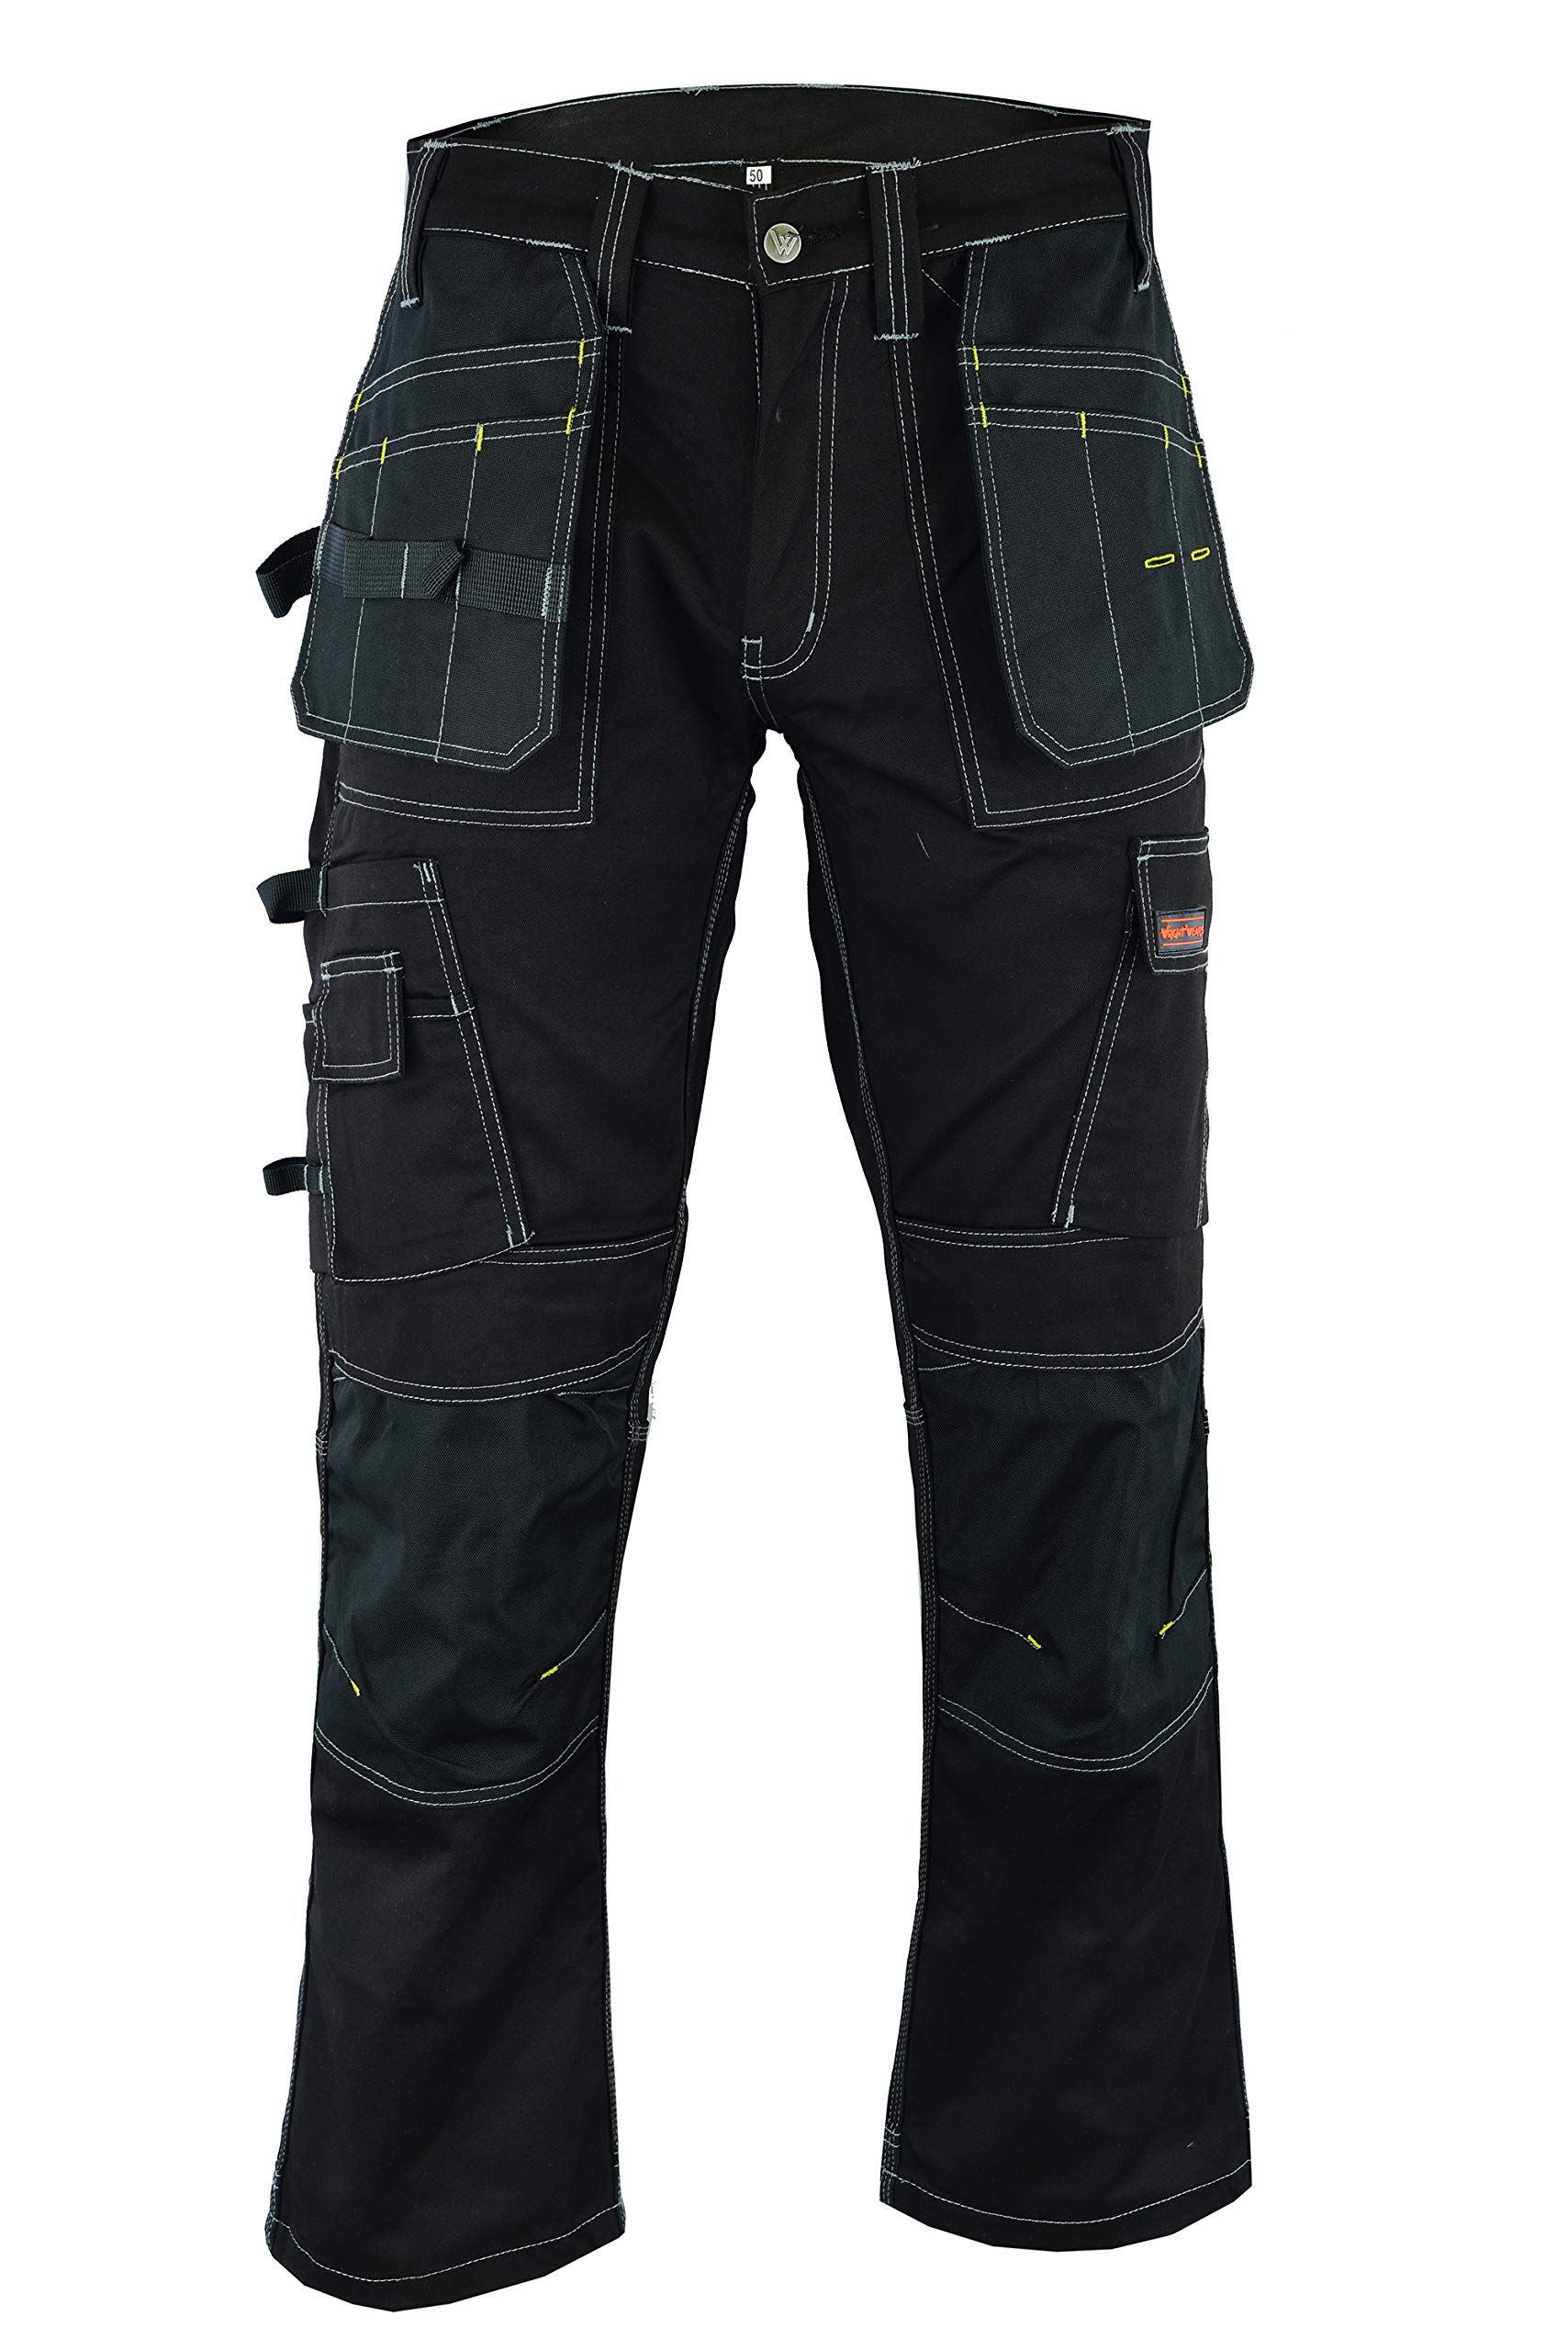 Wright Wears Men Work Cargo Pro Shorts Black /& Grey Heavy Duty Multi Pockets Like Dewalt